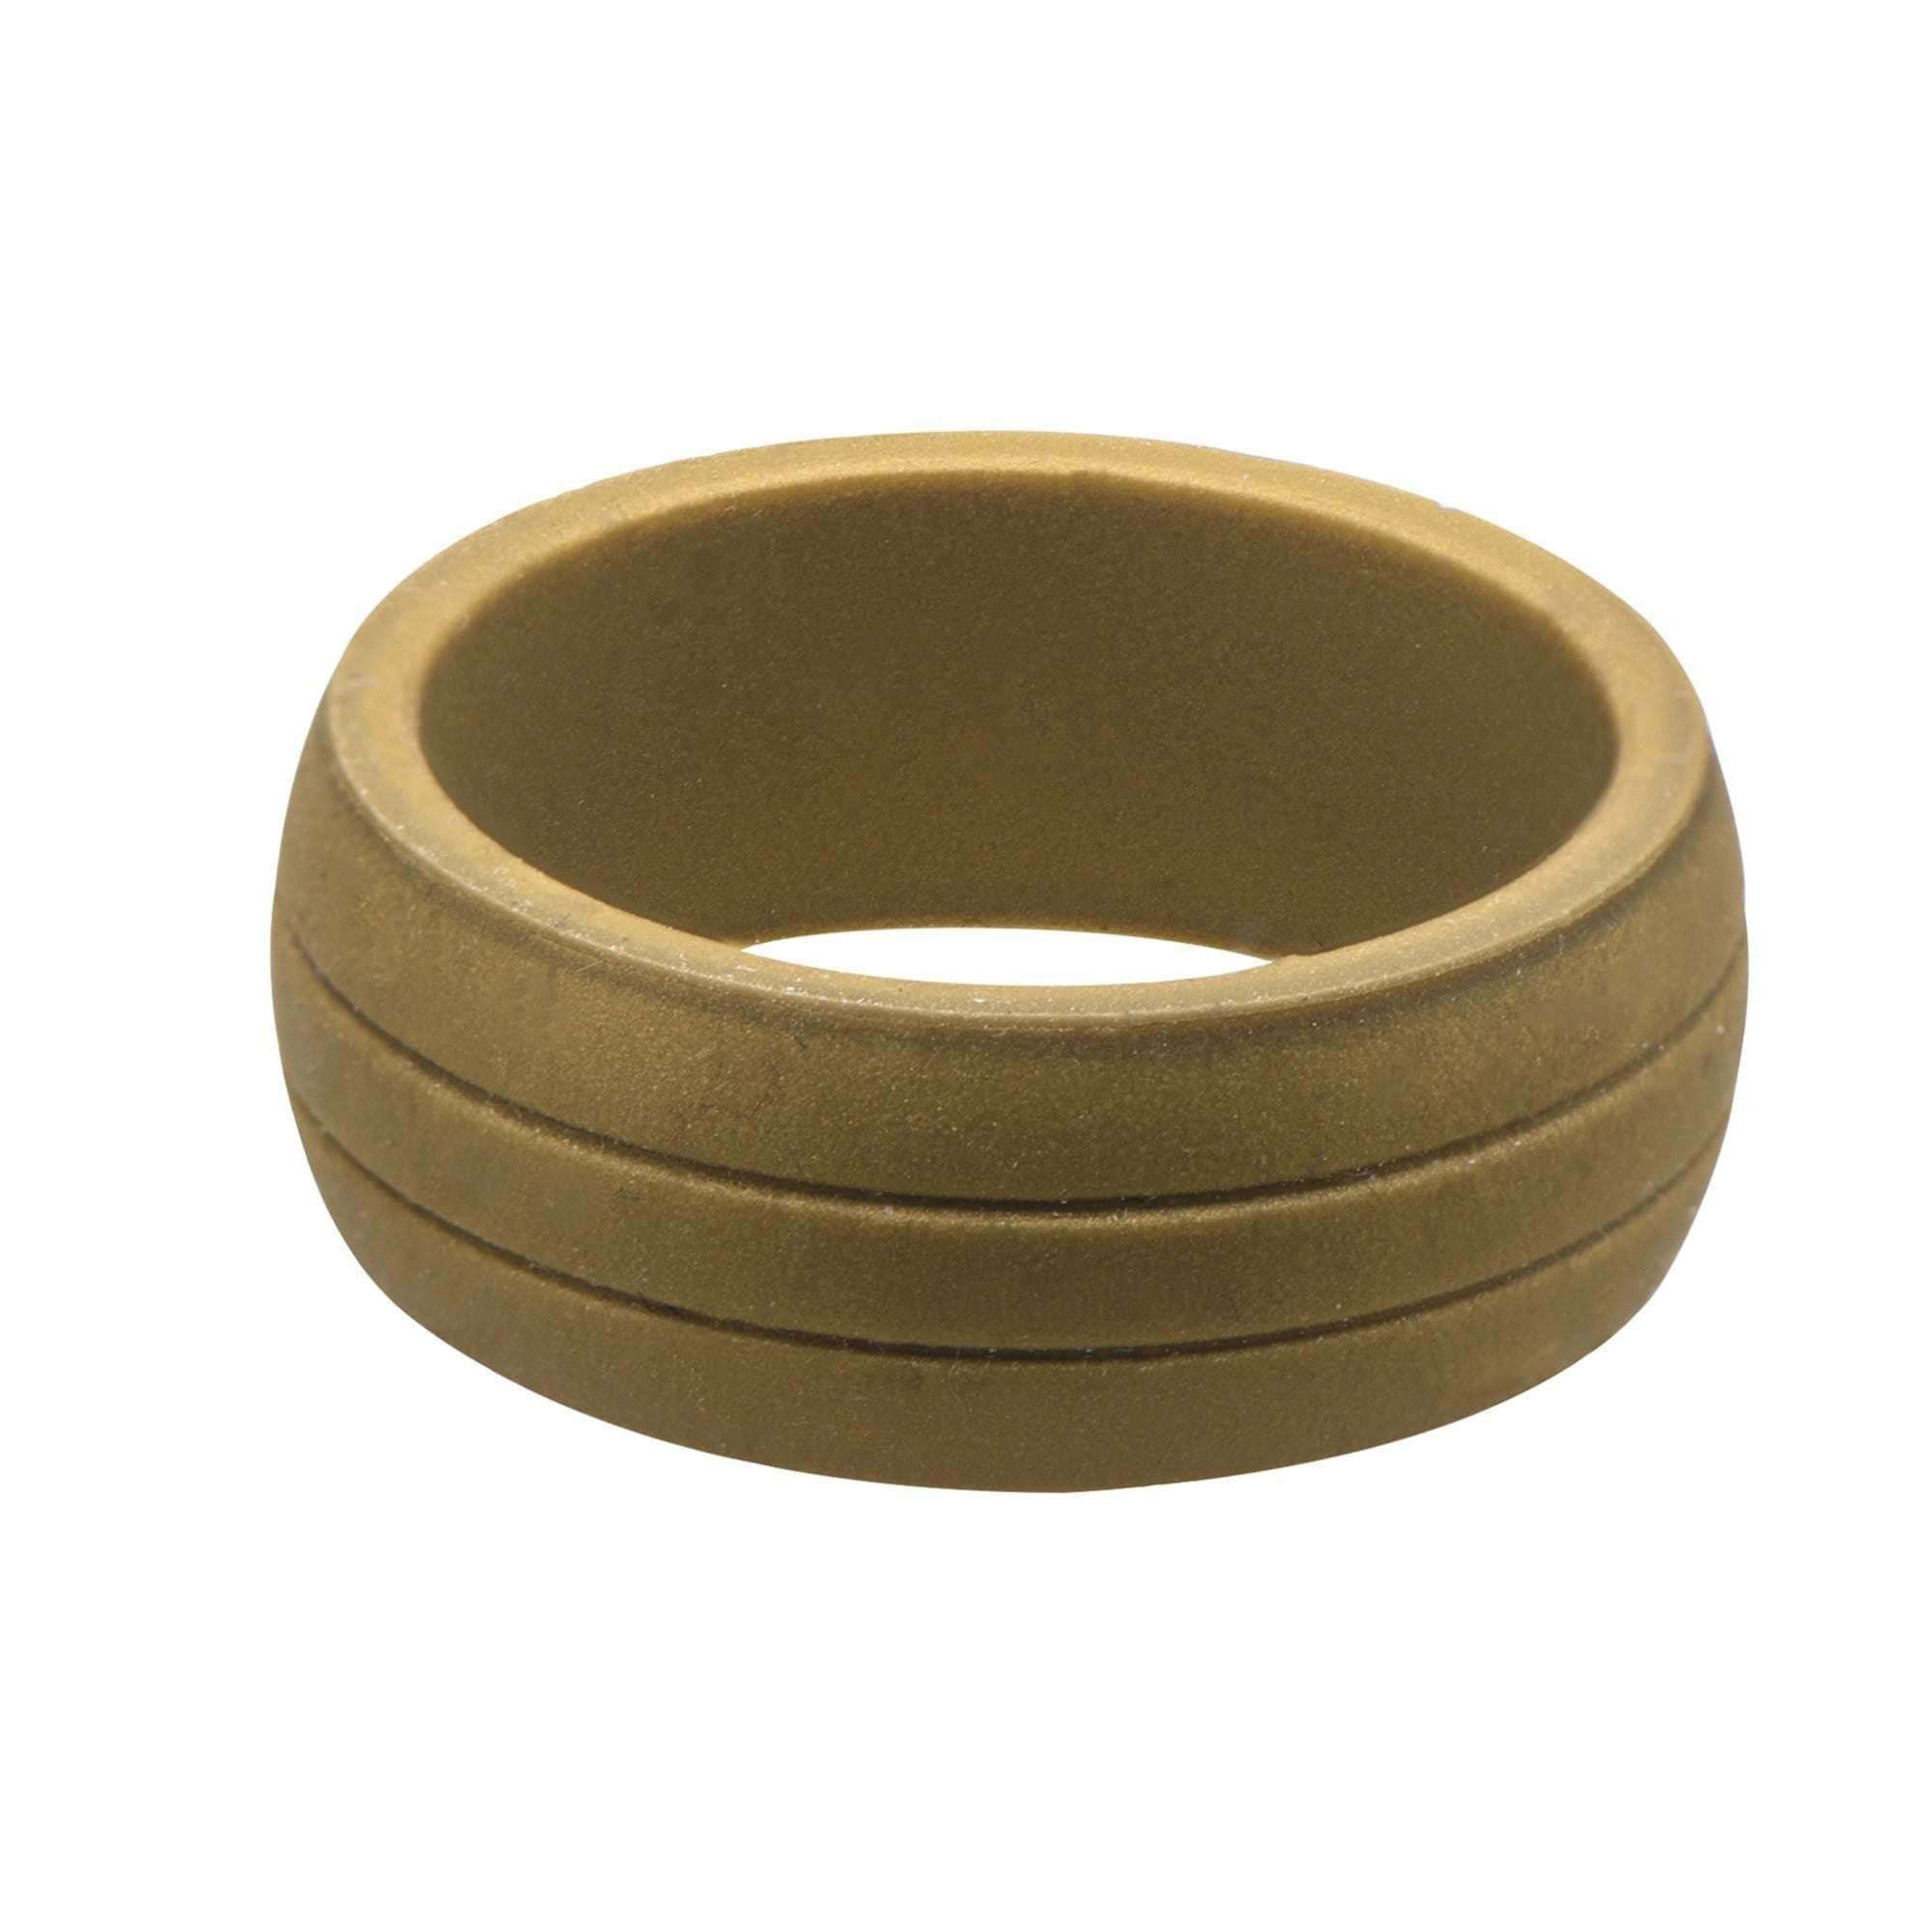 Tan Silicone 9mm Double Lined Safety Band Ring